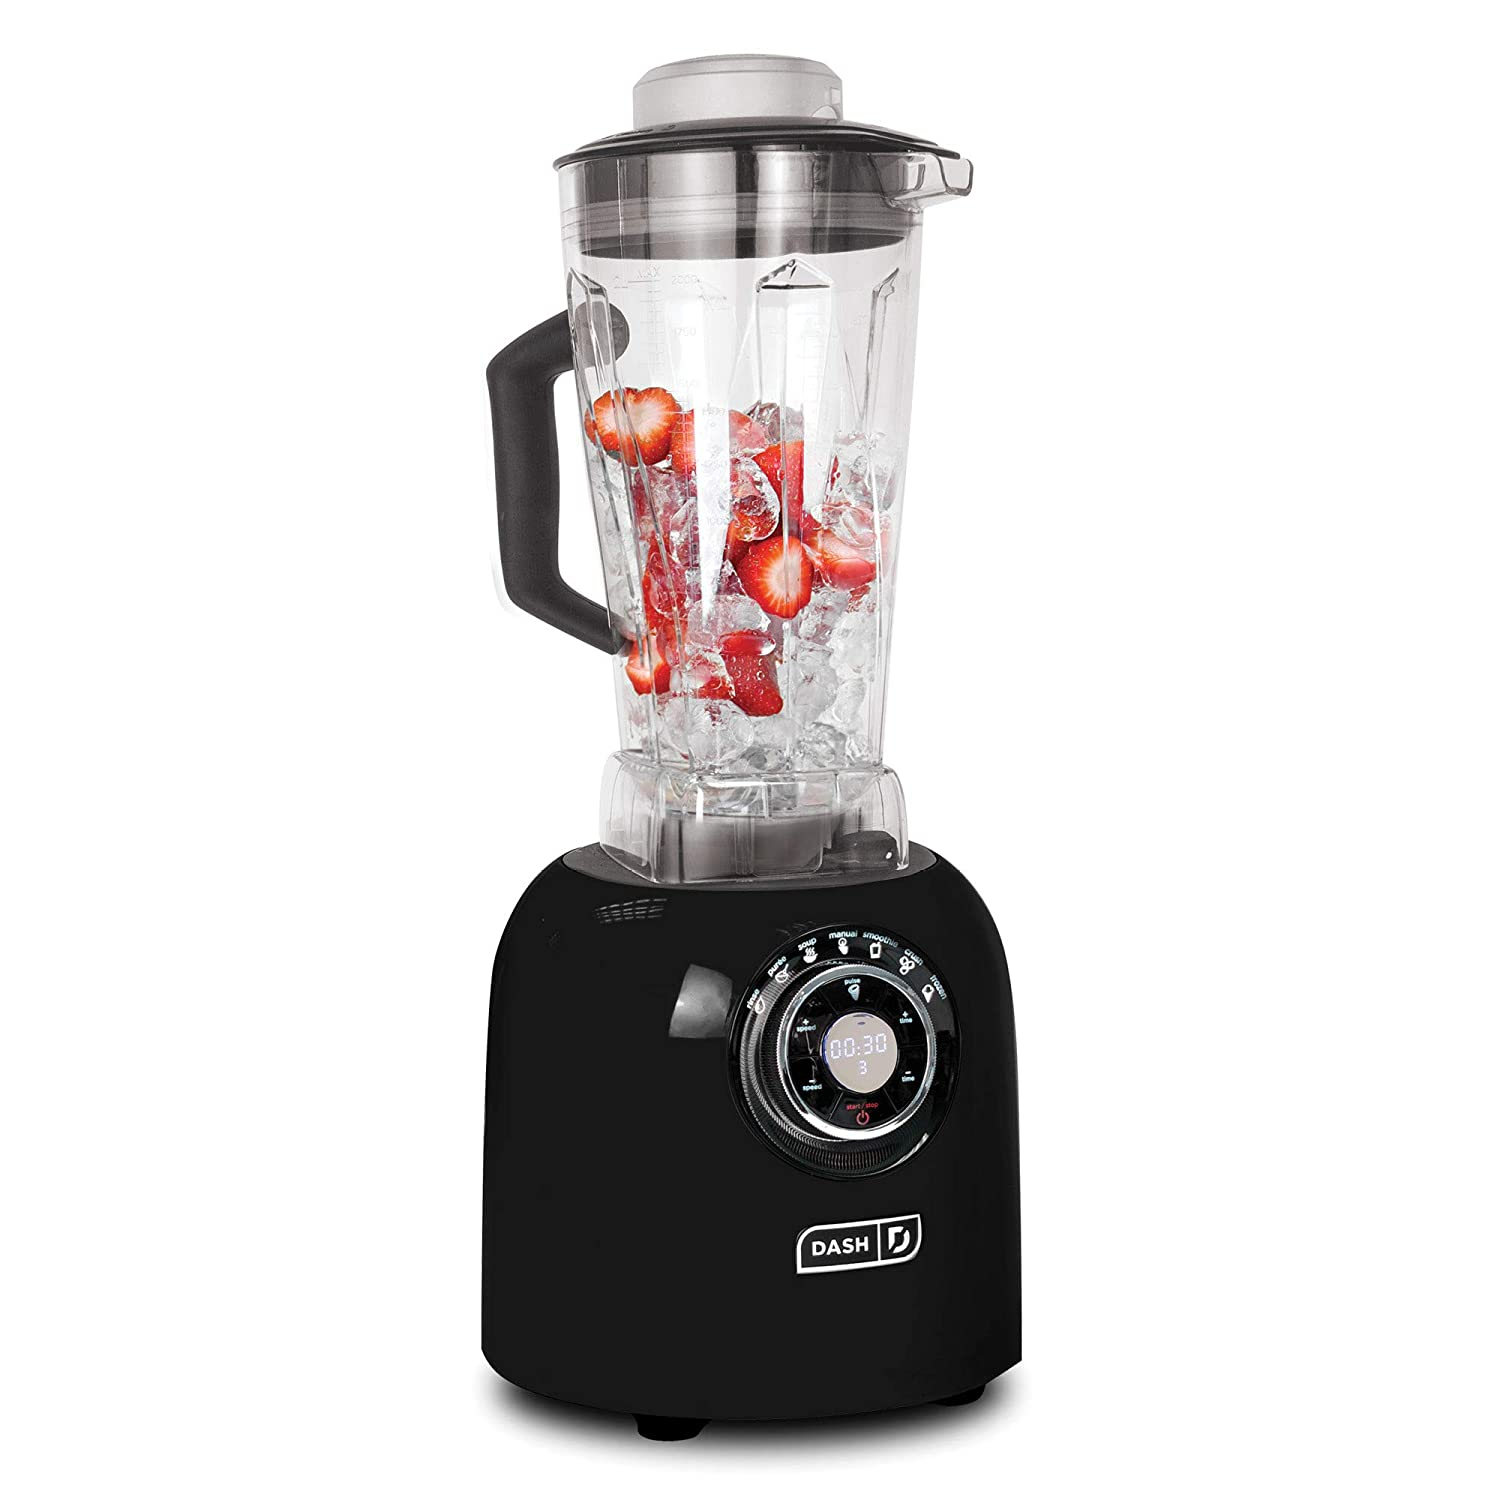 Dash Chef Series 64 oz Blender with Stainless Steel Blades + Digital Display for Coffee Drinks, Frozen Cocktails, Smoothies, Soup, Fondue & More - Black